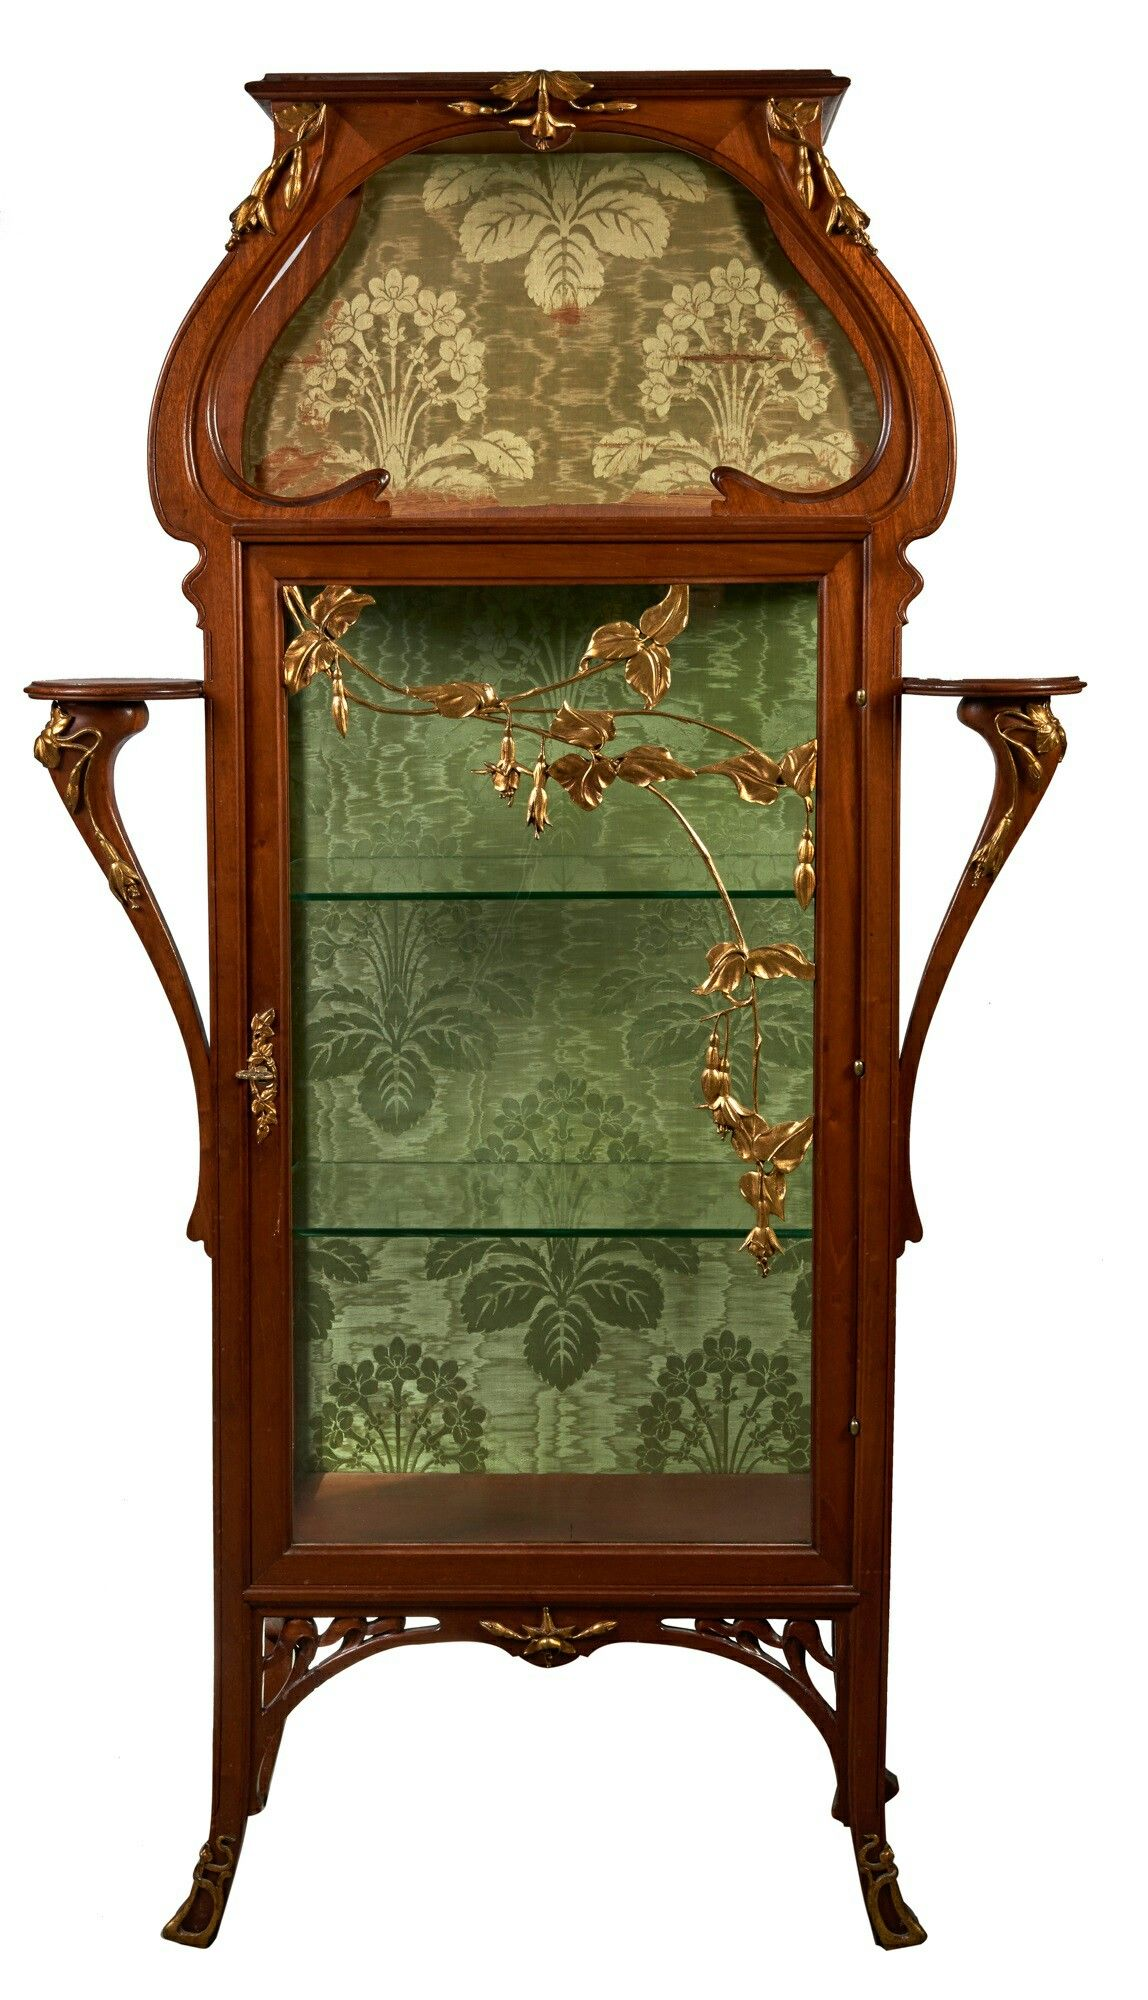 Art nouveau natural wood showcase molded and sculpted decor applied